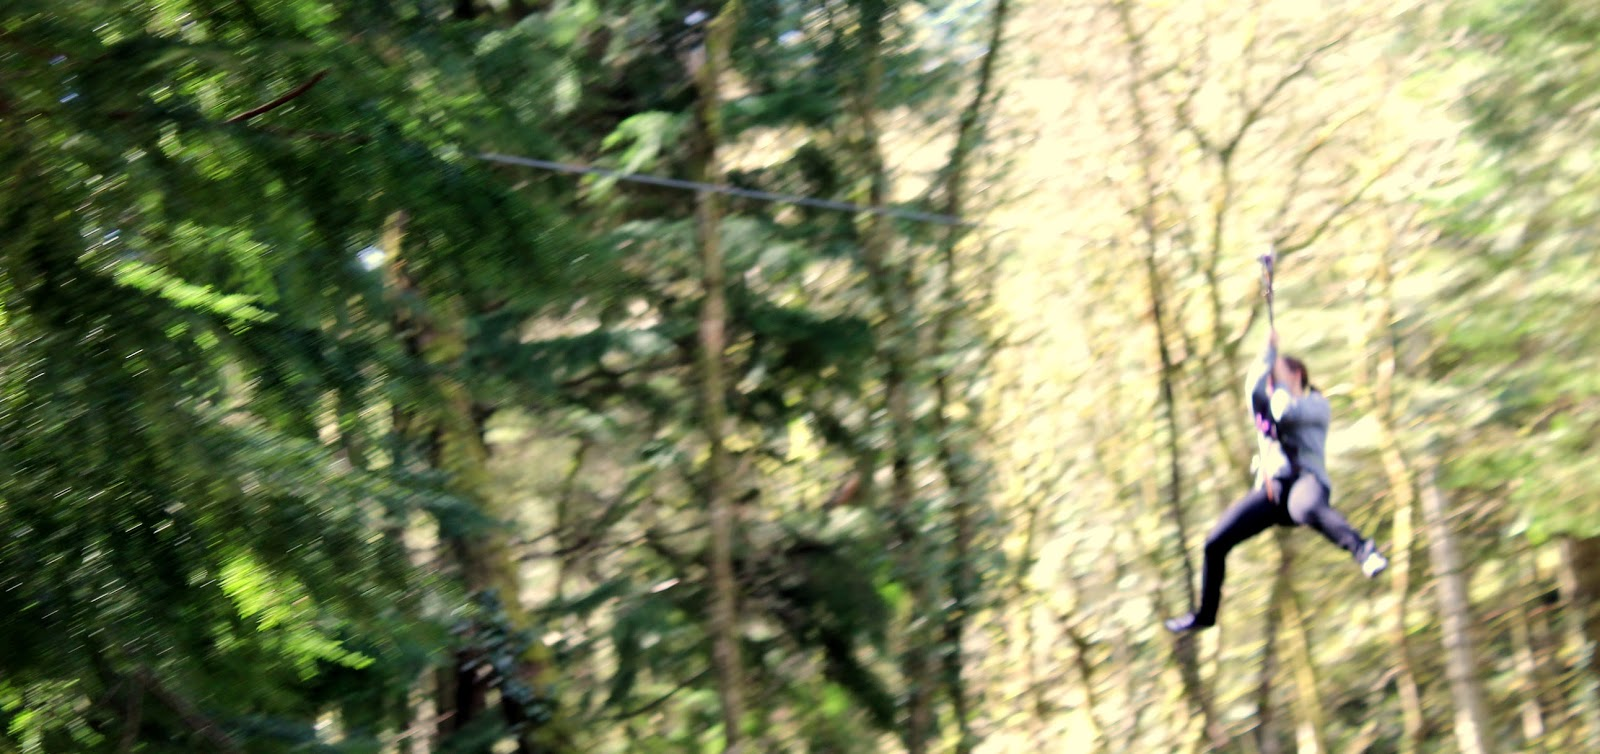 person mid zip wire in woods